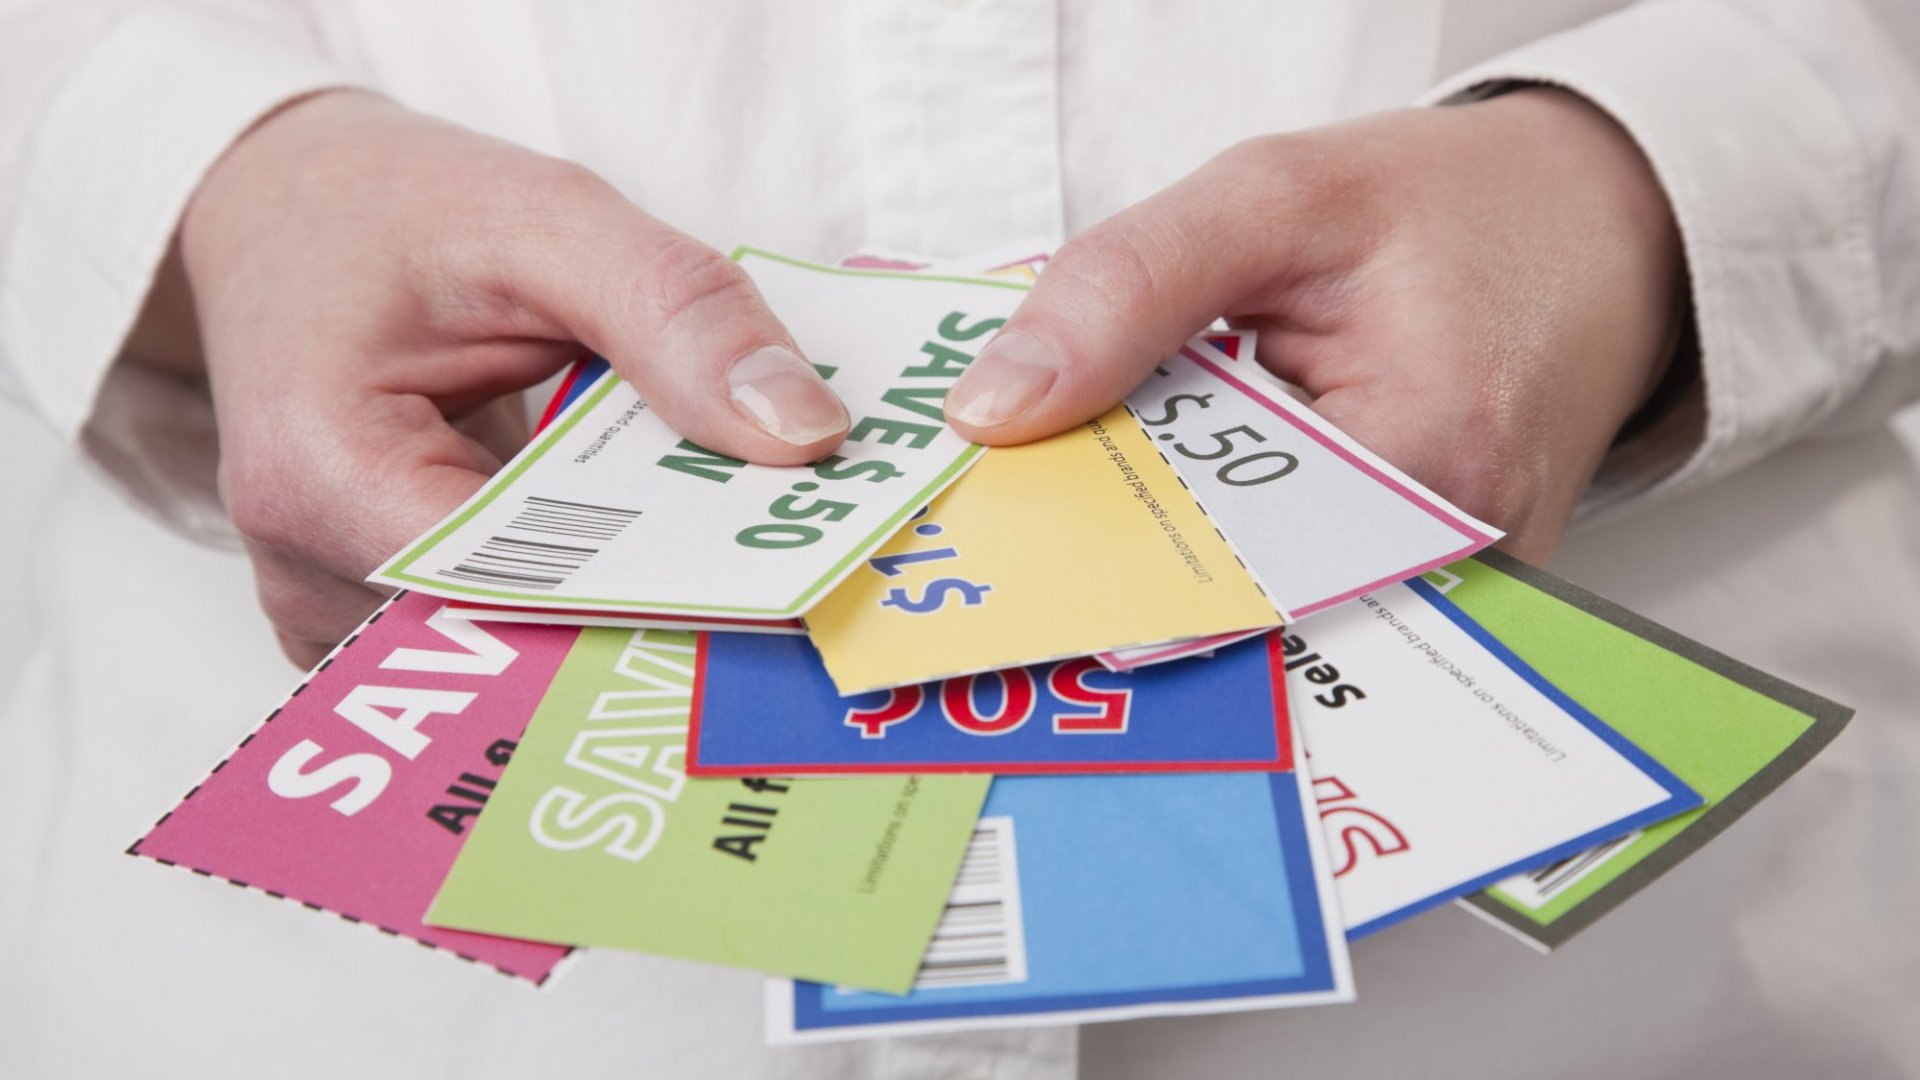 6 Easy Ways To Promote Your Business With Coupons And Deals